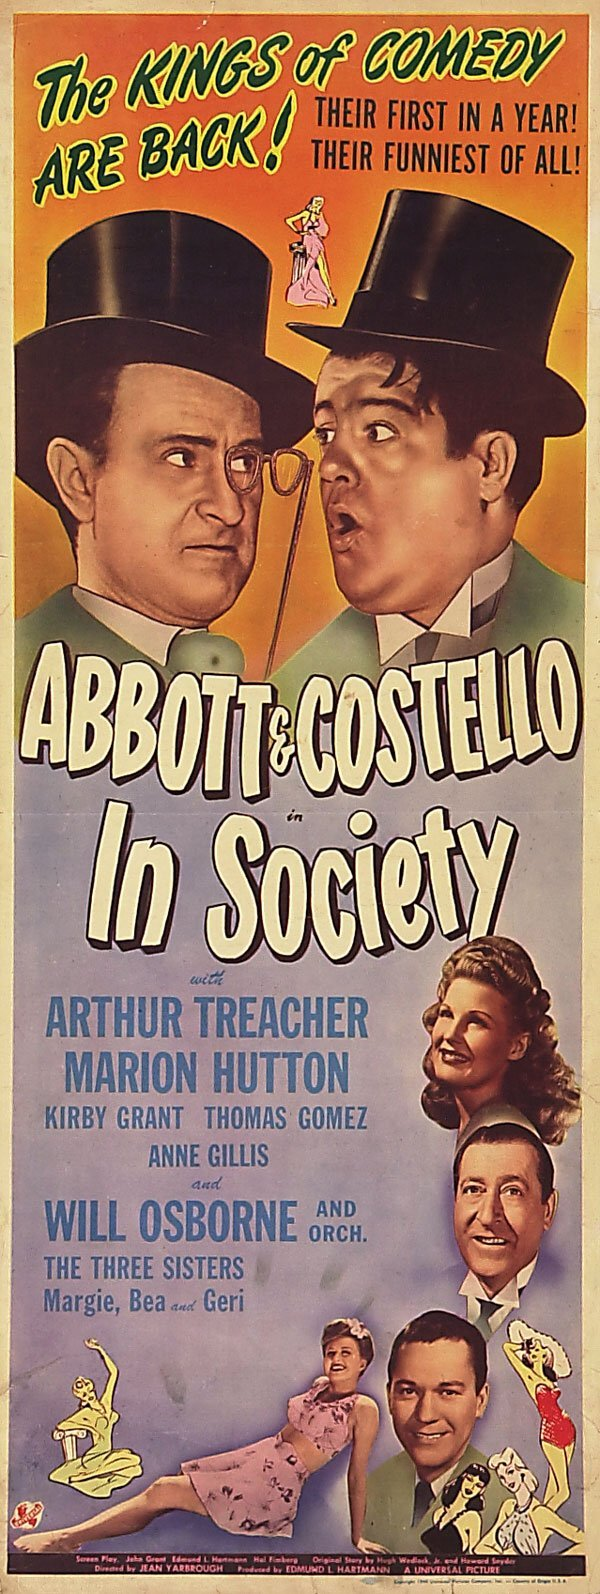 72300006: ABBOTT AND COSTELLO IN SOCIETY (1944)